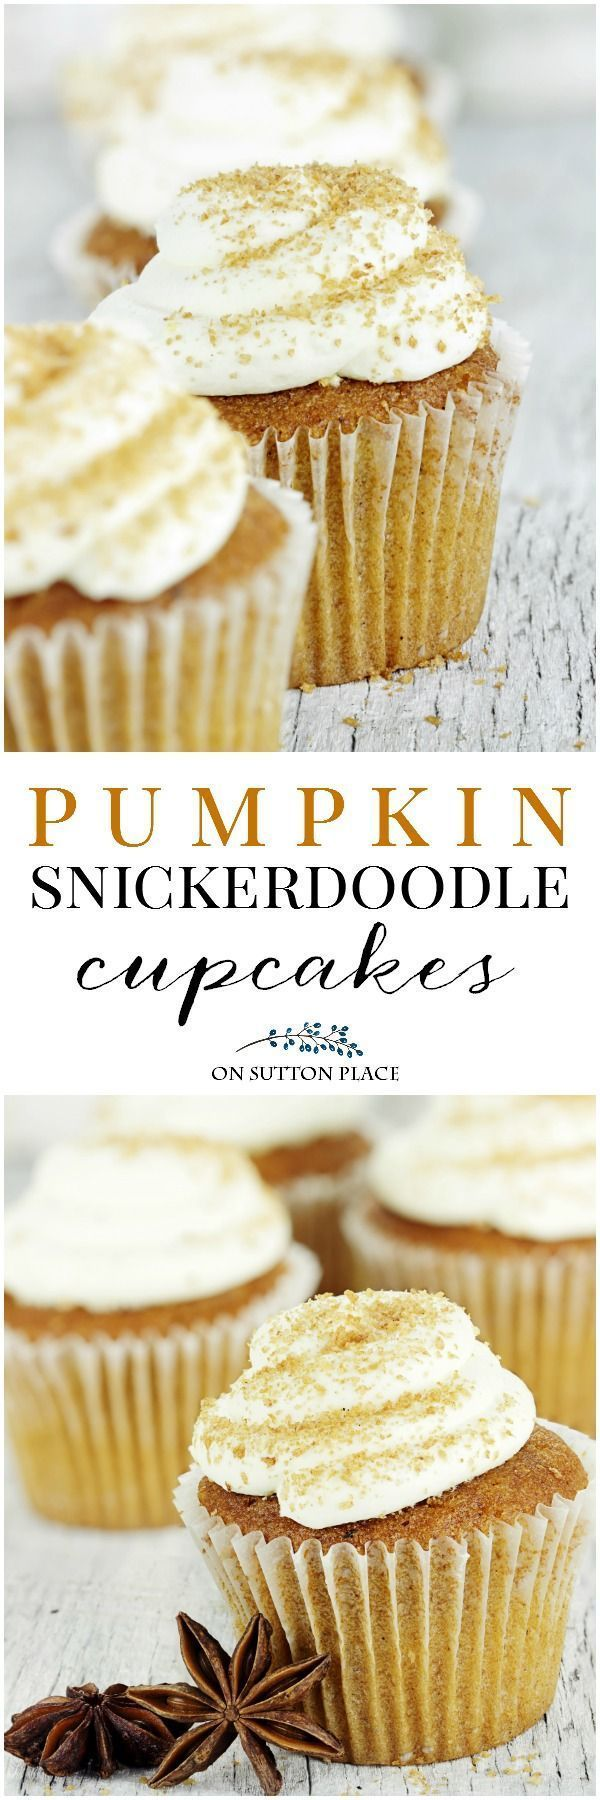 Cupcakes full of pumpkin and cinnamon topped with a cream cheese frosting. Perfect for fall family gatherings or after-school snacks. #pumpkindessert #pumpkincupcake